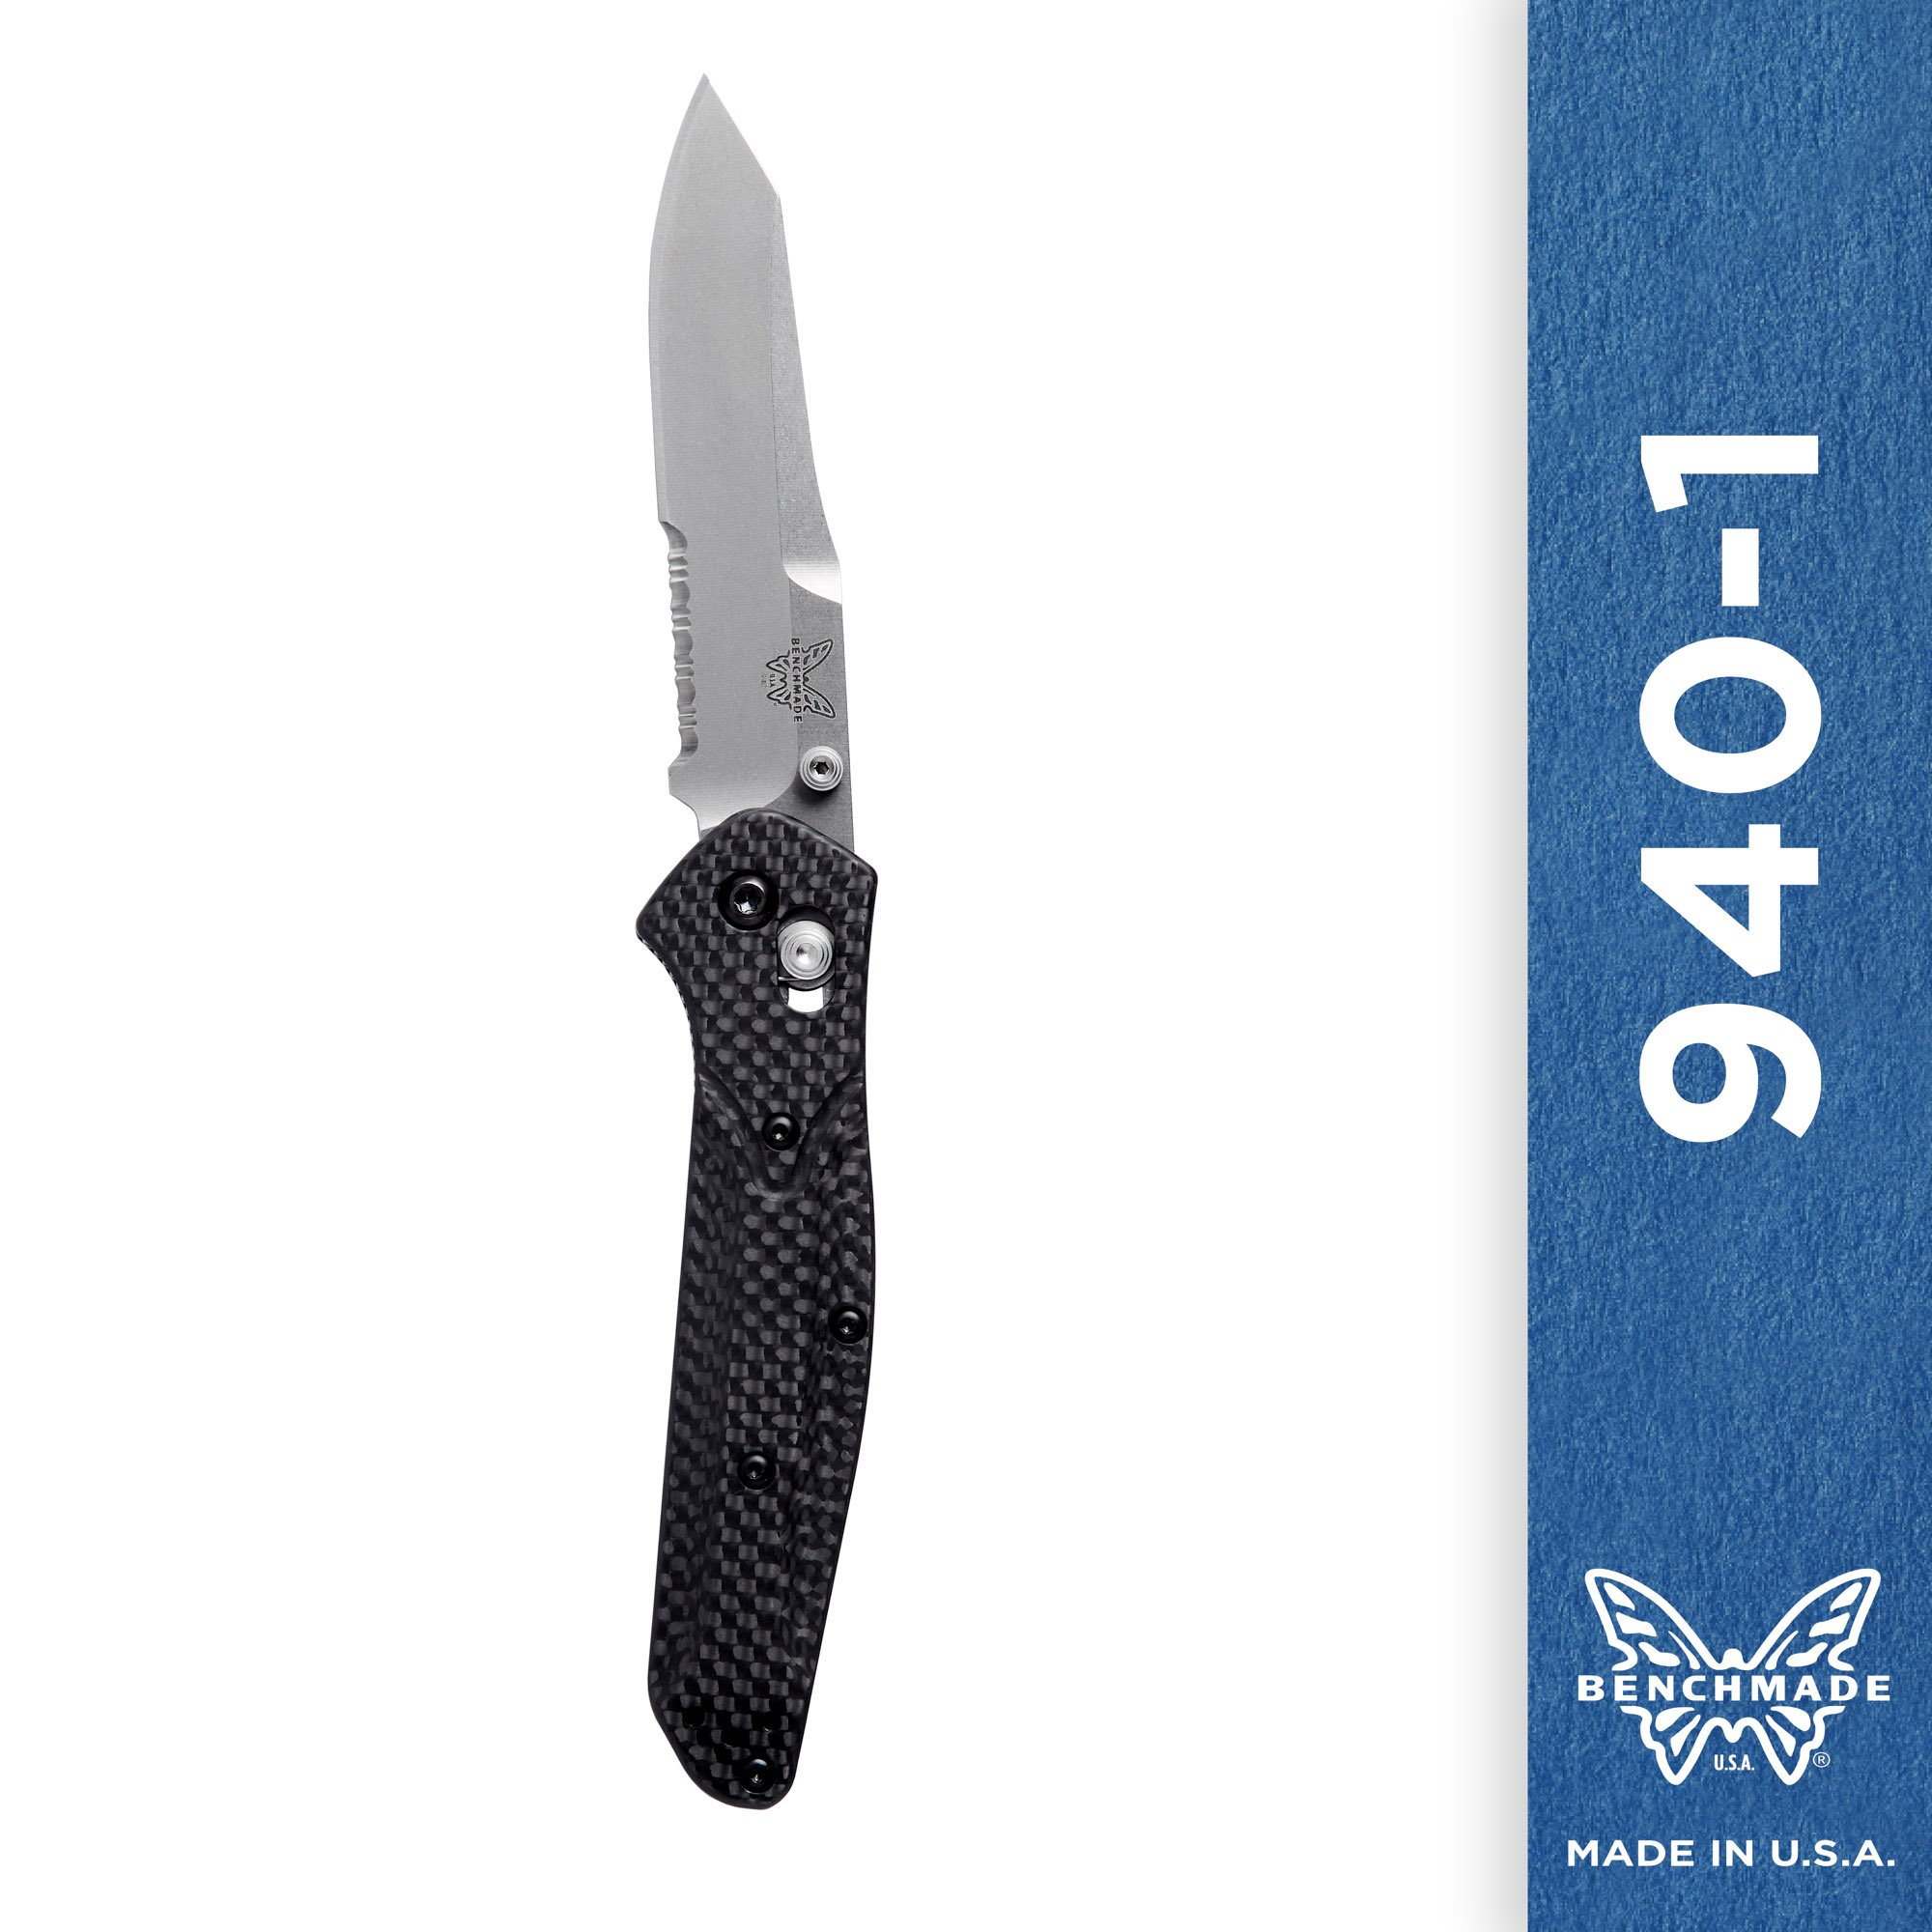 Benchmade - 940-1, Serrated Reverse Tanto, Carbon Fiber Handle by Benchmade